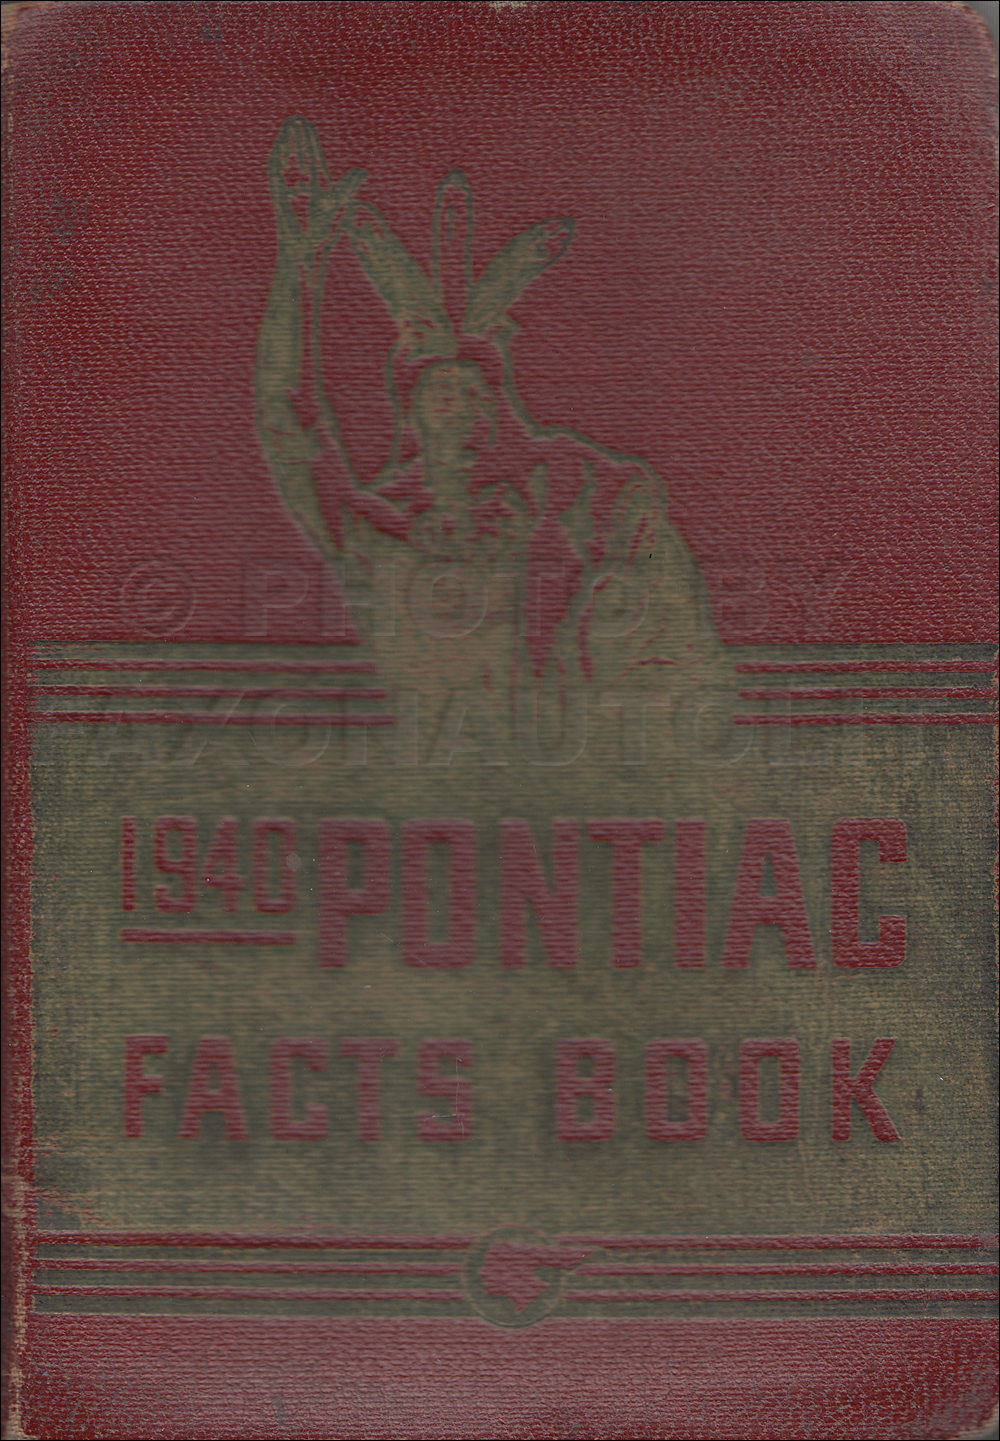 1940 Pontiac Facts Book Original Deluxe, Special and Torpedo Models